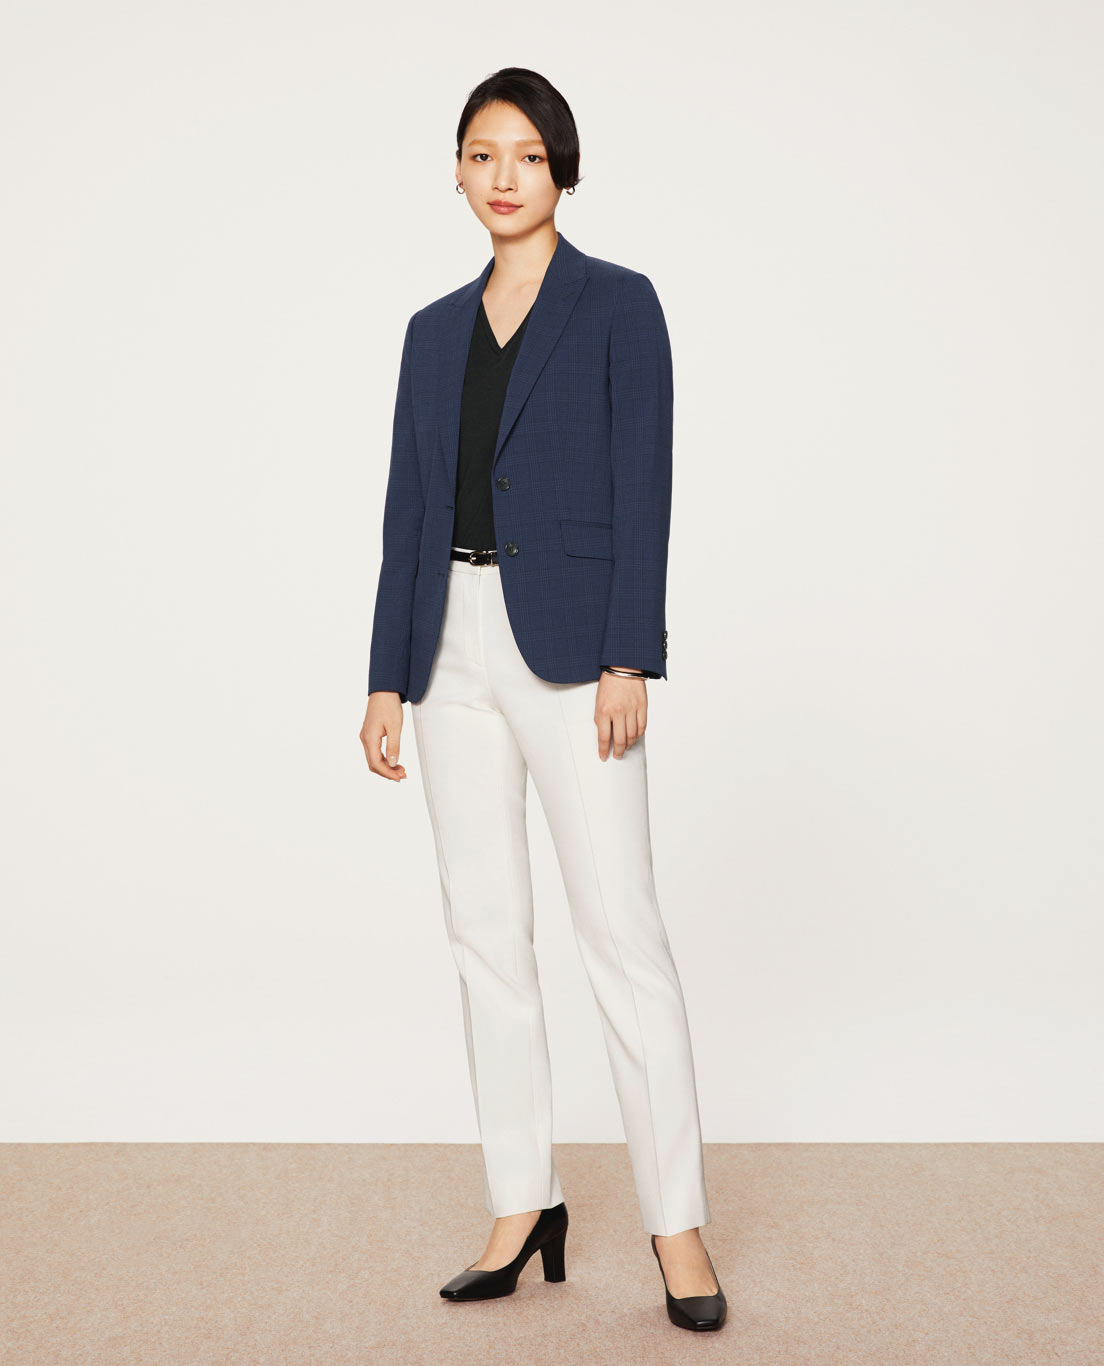 COMFORT TAILORED JACKET                      : 5602 / RIOPELE / WASHABLE / 2WAYSTRETCH / NAVYCHECK, TAPERED PANTS: 5454 / WASHABLE / STRETCH / UV / DRY / COOL / WHITE